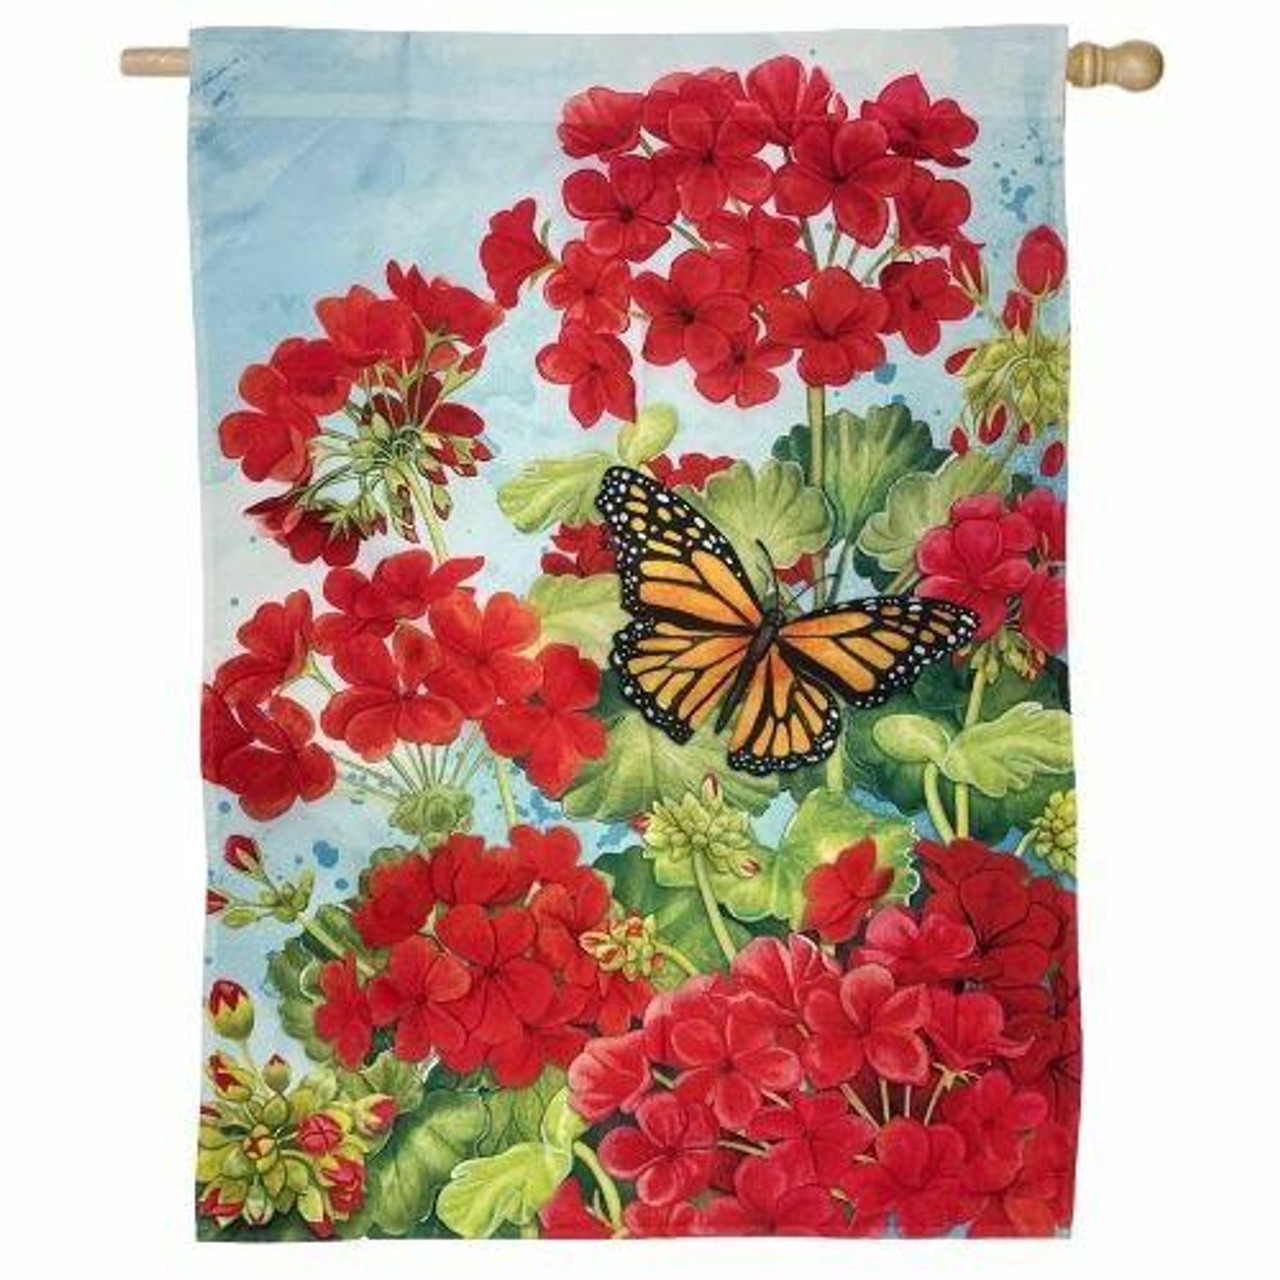 Red Geraniums and house flag with monarch butterfly